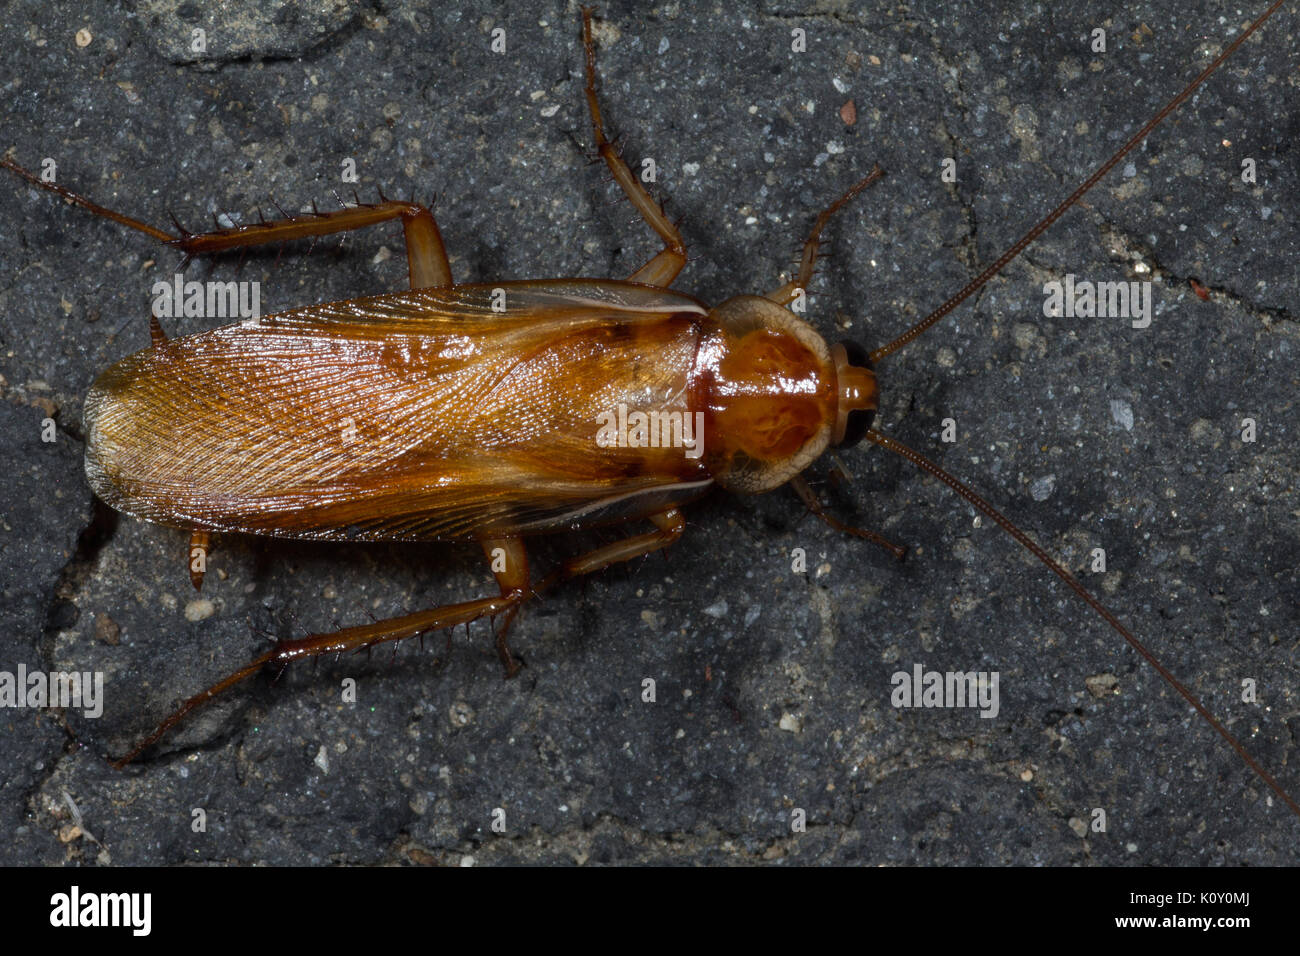 small brown Cockroach among fallen leaves - Stock Image